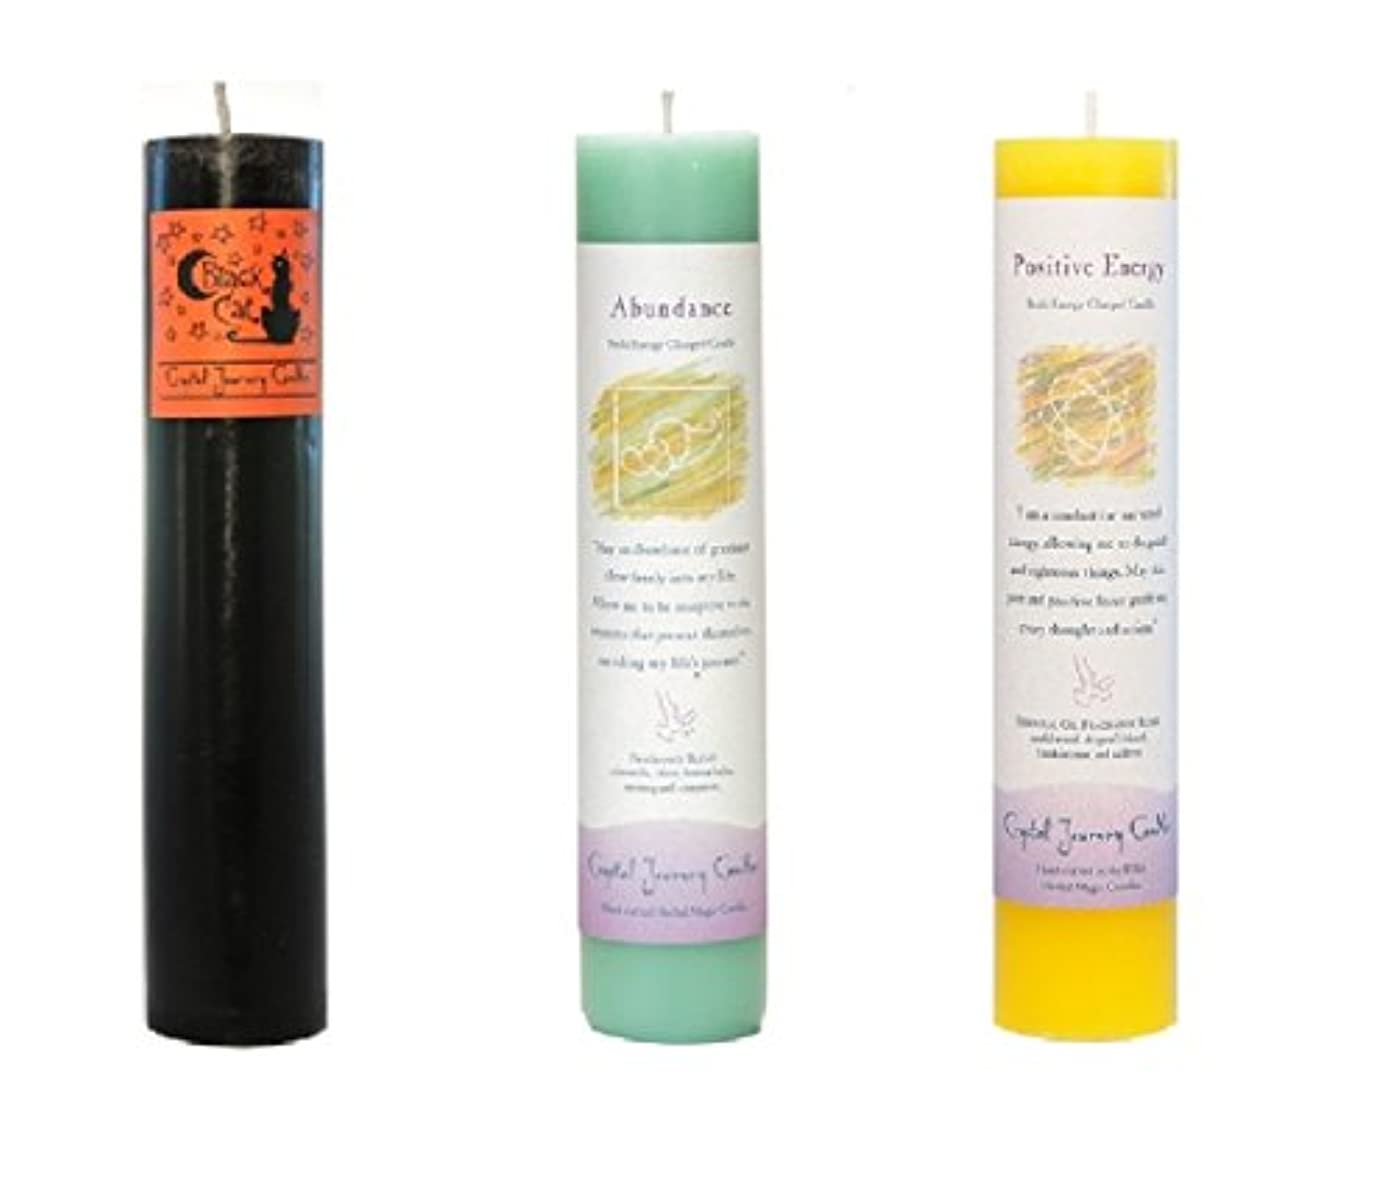 ステッチ熟読マーカー(Black Cat, Abundance, Positive Energy) - Crystal Journey Reiki Charged Herbal Magic Pillar Candle Bundle (Black...